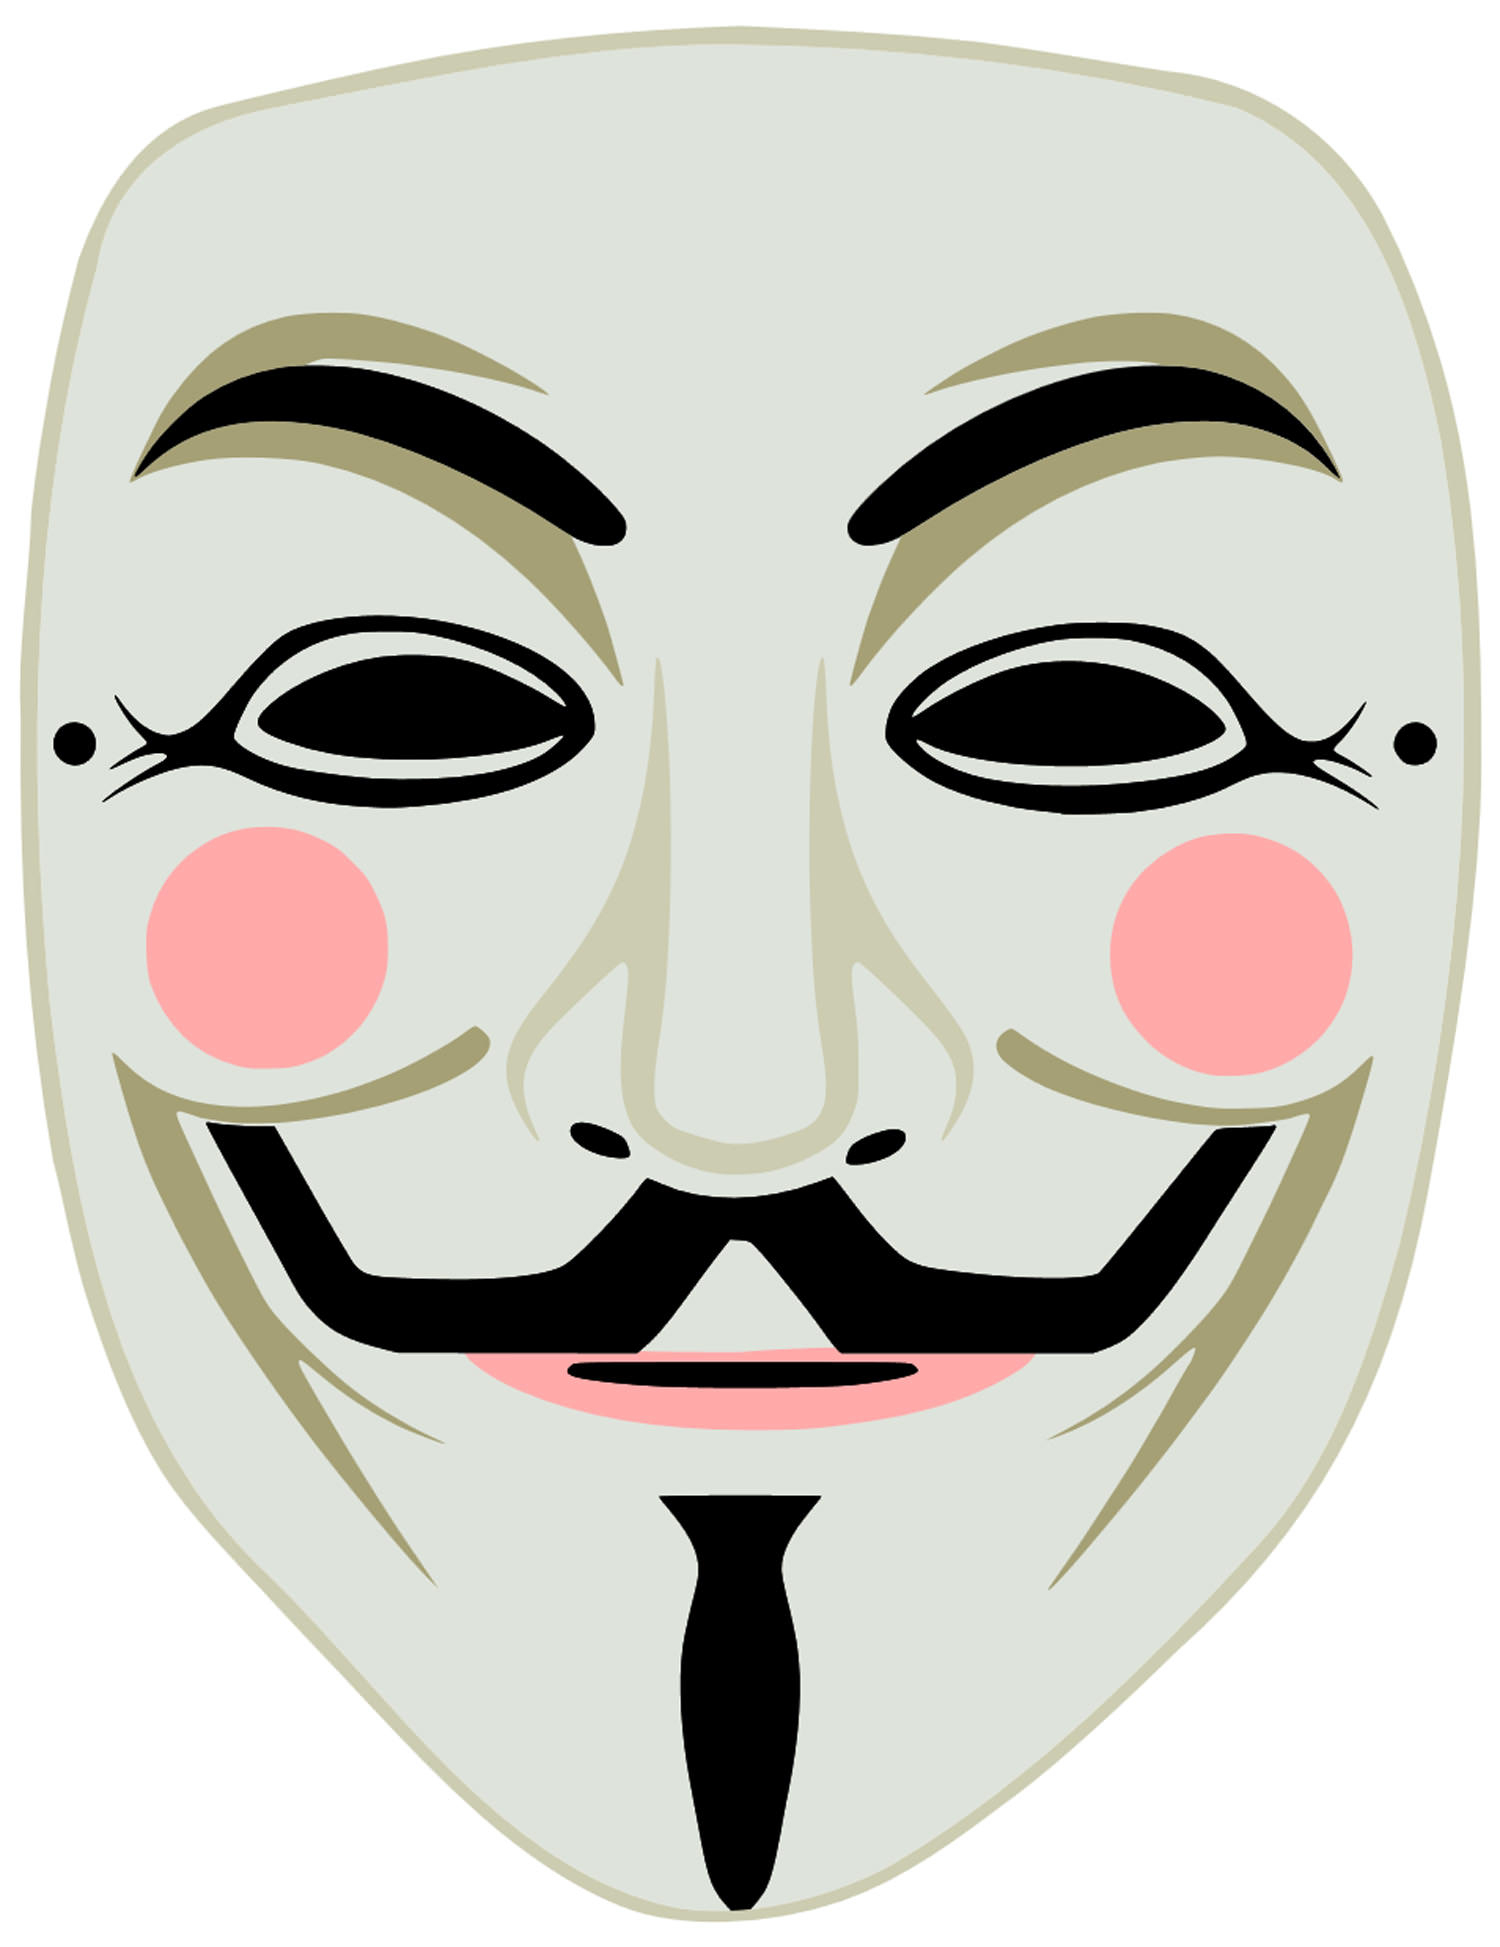 3 High Quality Printable Vendetta Guy Fawkes Mask Cut Out - Free Printable Face Masks